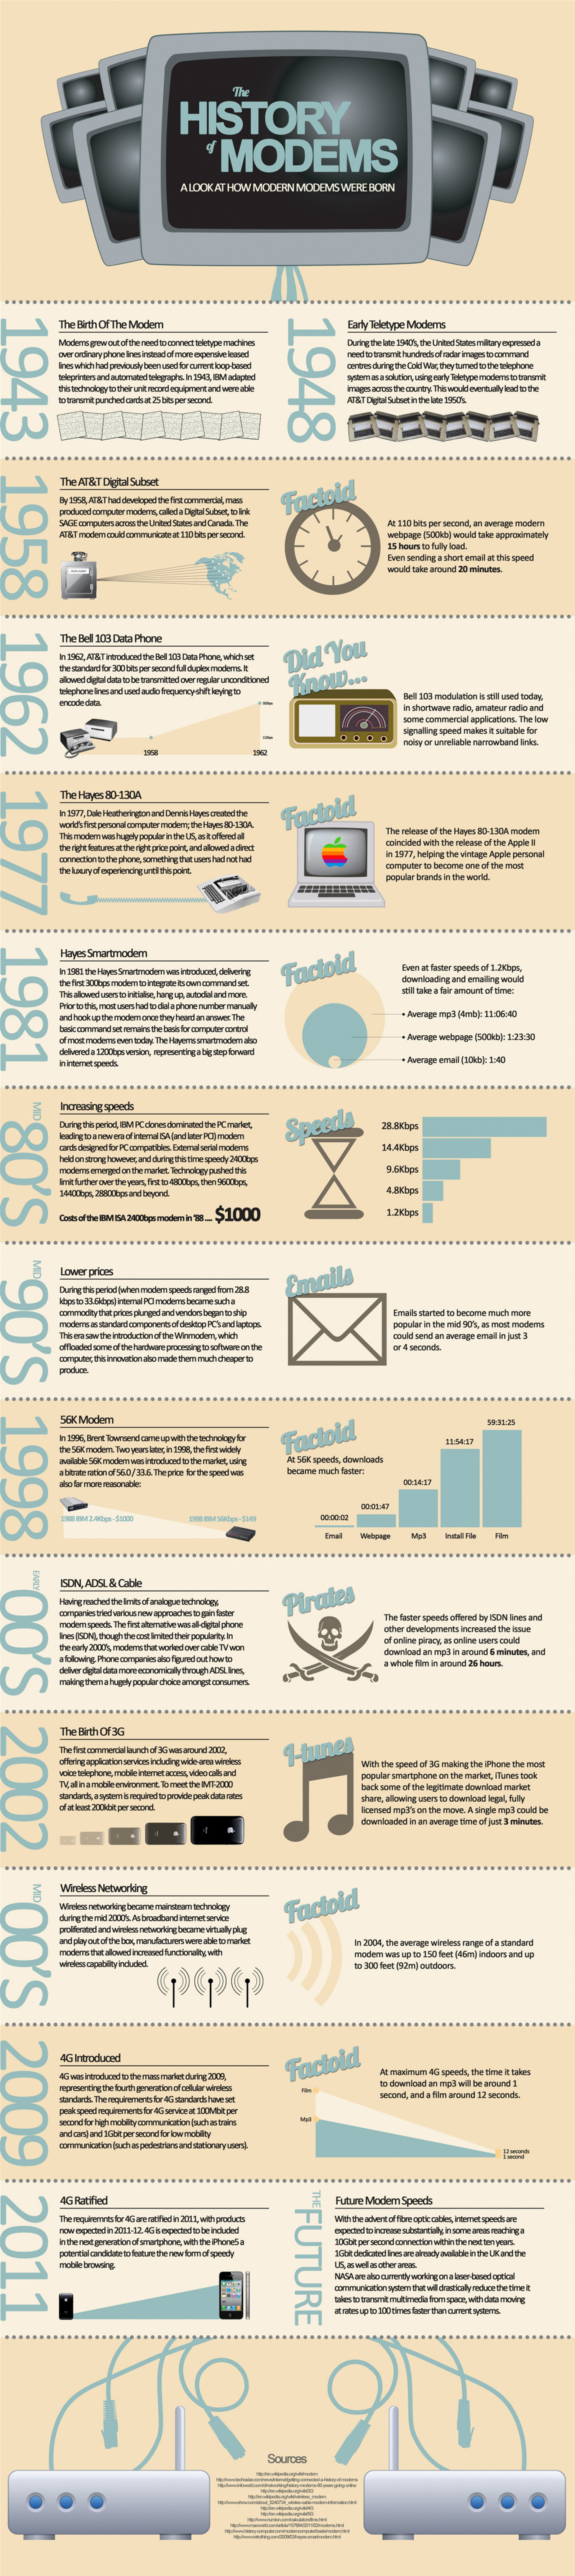 History of the Modem Infographic